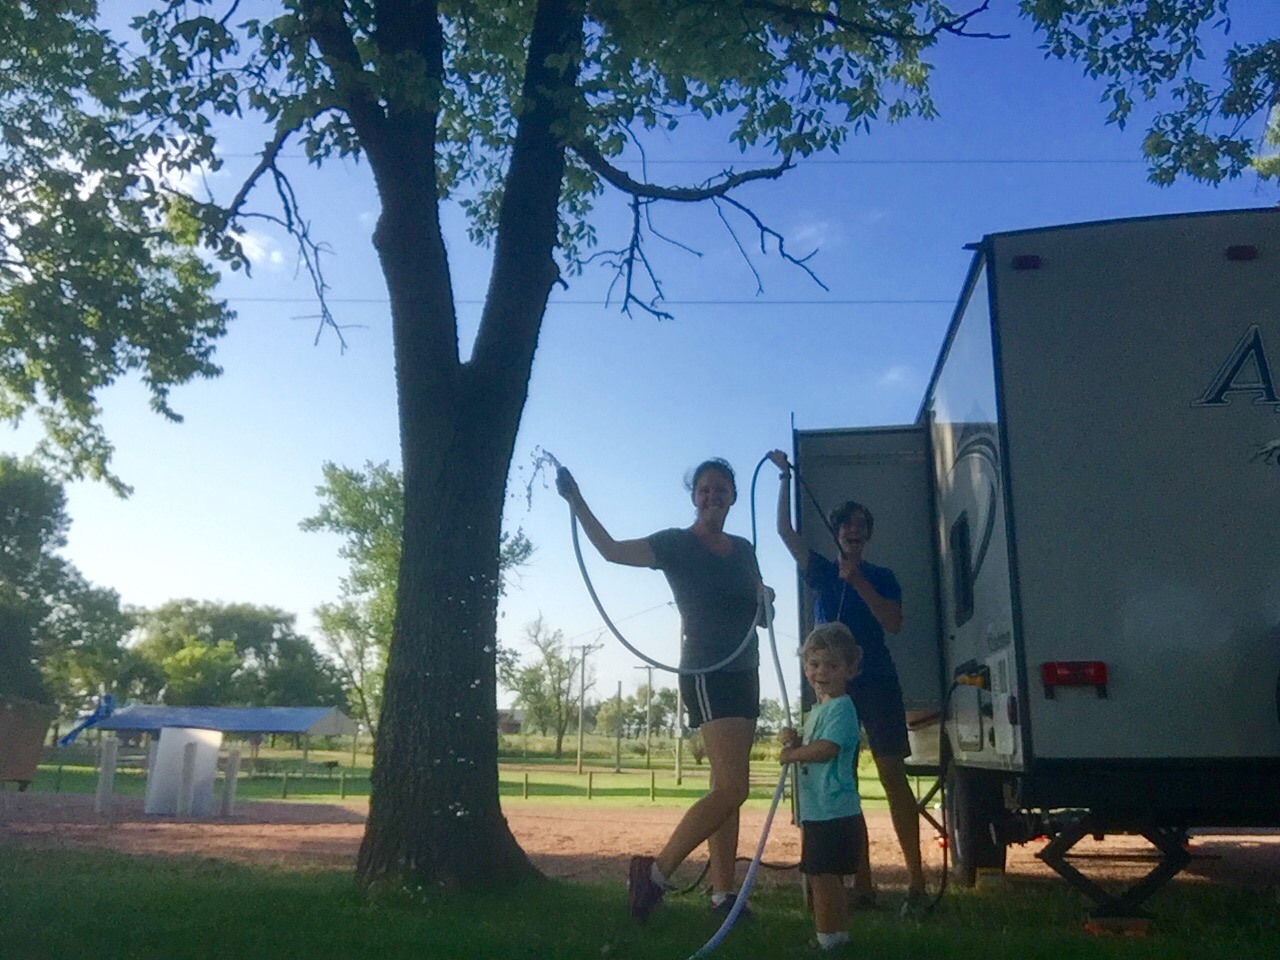 Celebrating a FREE campground in tiny Marion, SD that even had electric and water hookups!